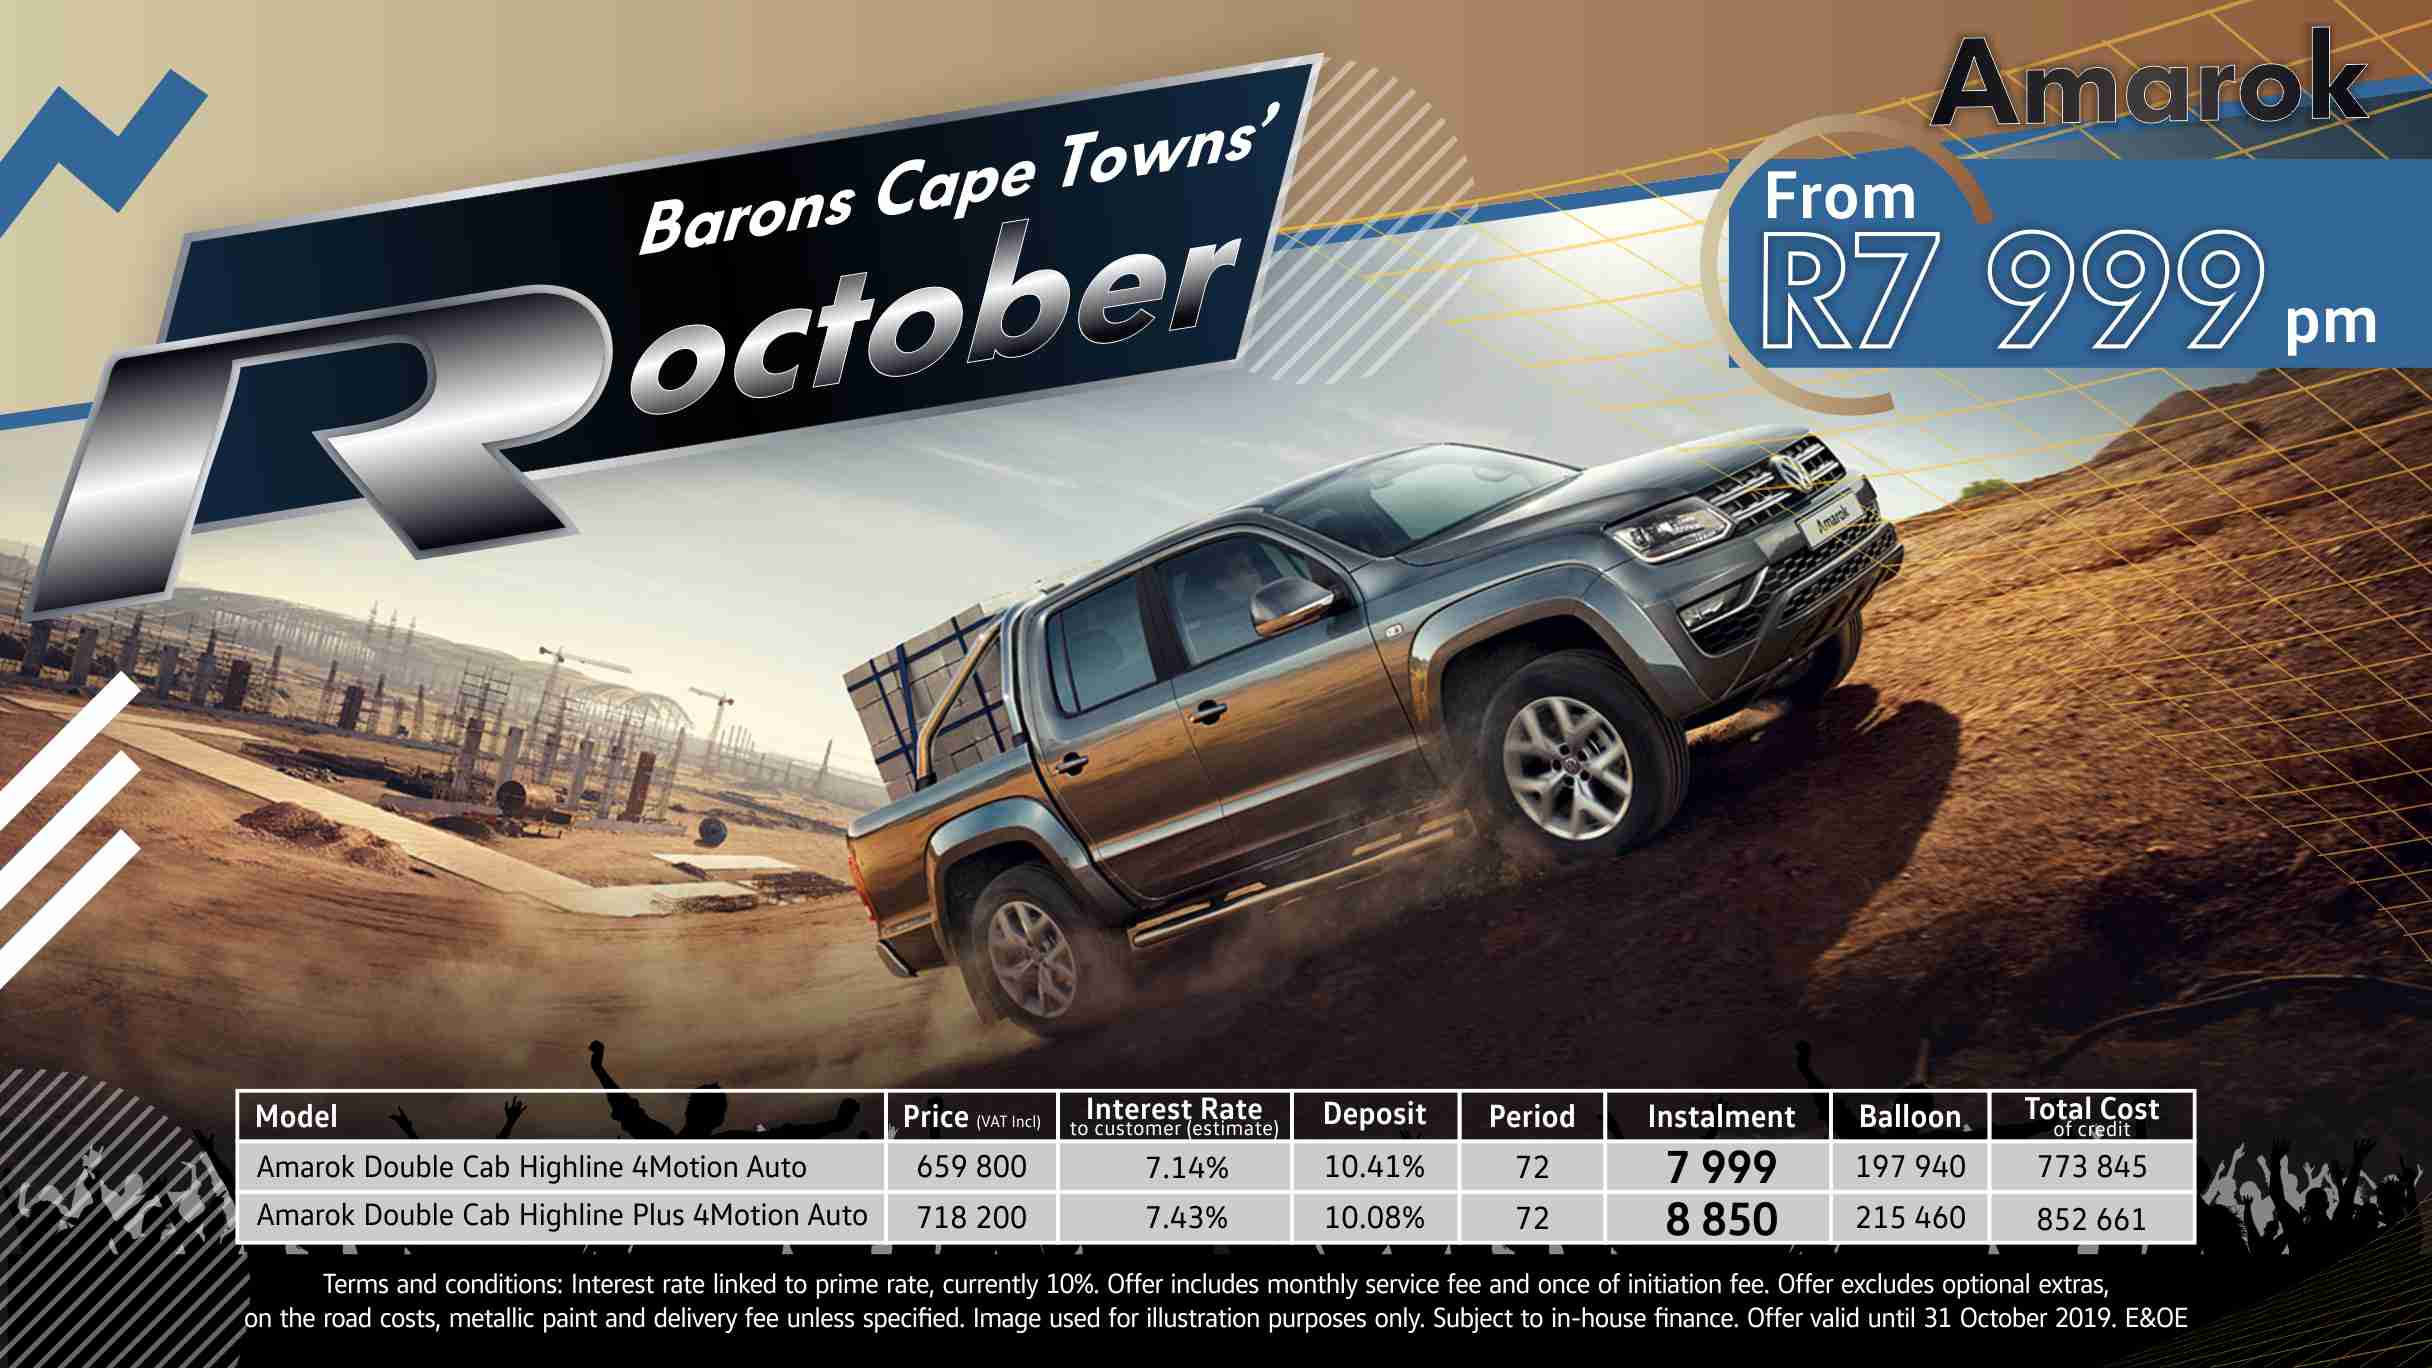 Barons Cape Town October Amarok offer